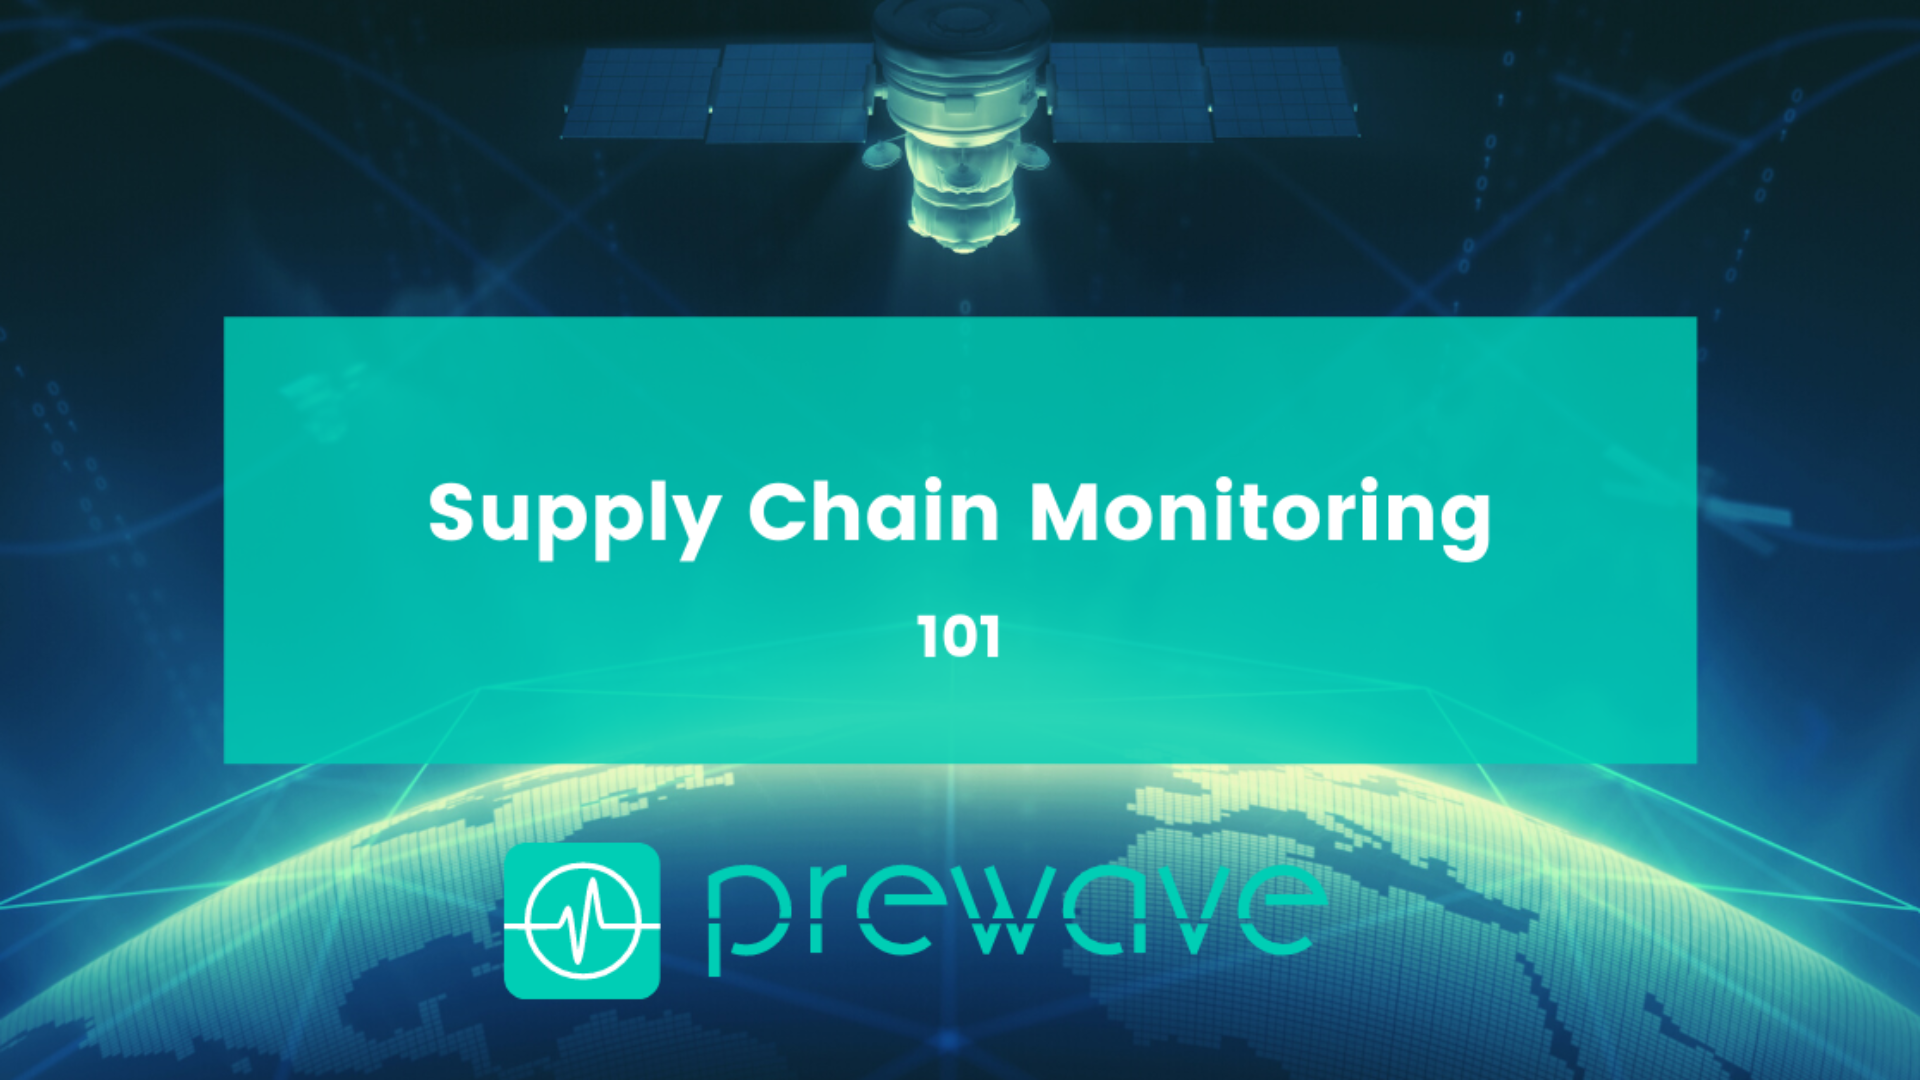 Prewave Supply Chain Monitoring 101